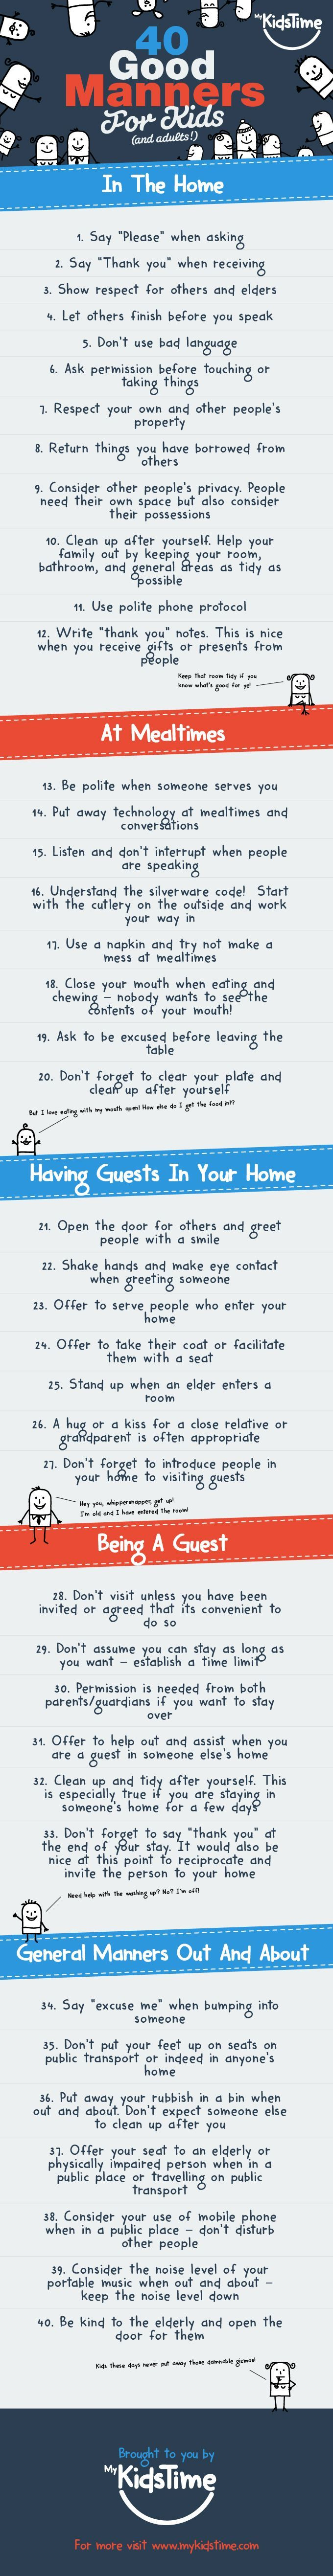 40 good manners for kids (and adults!)